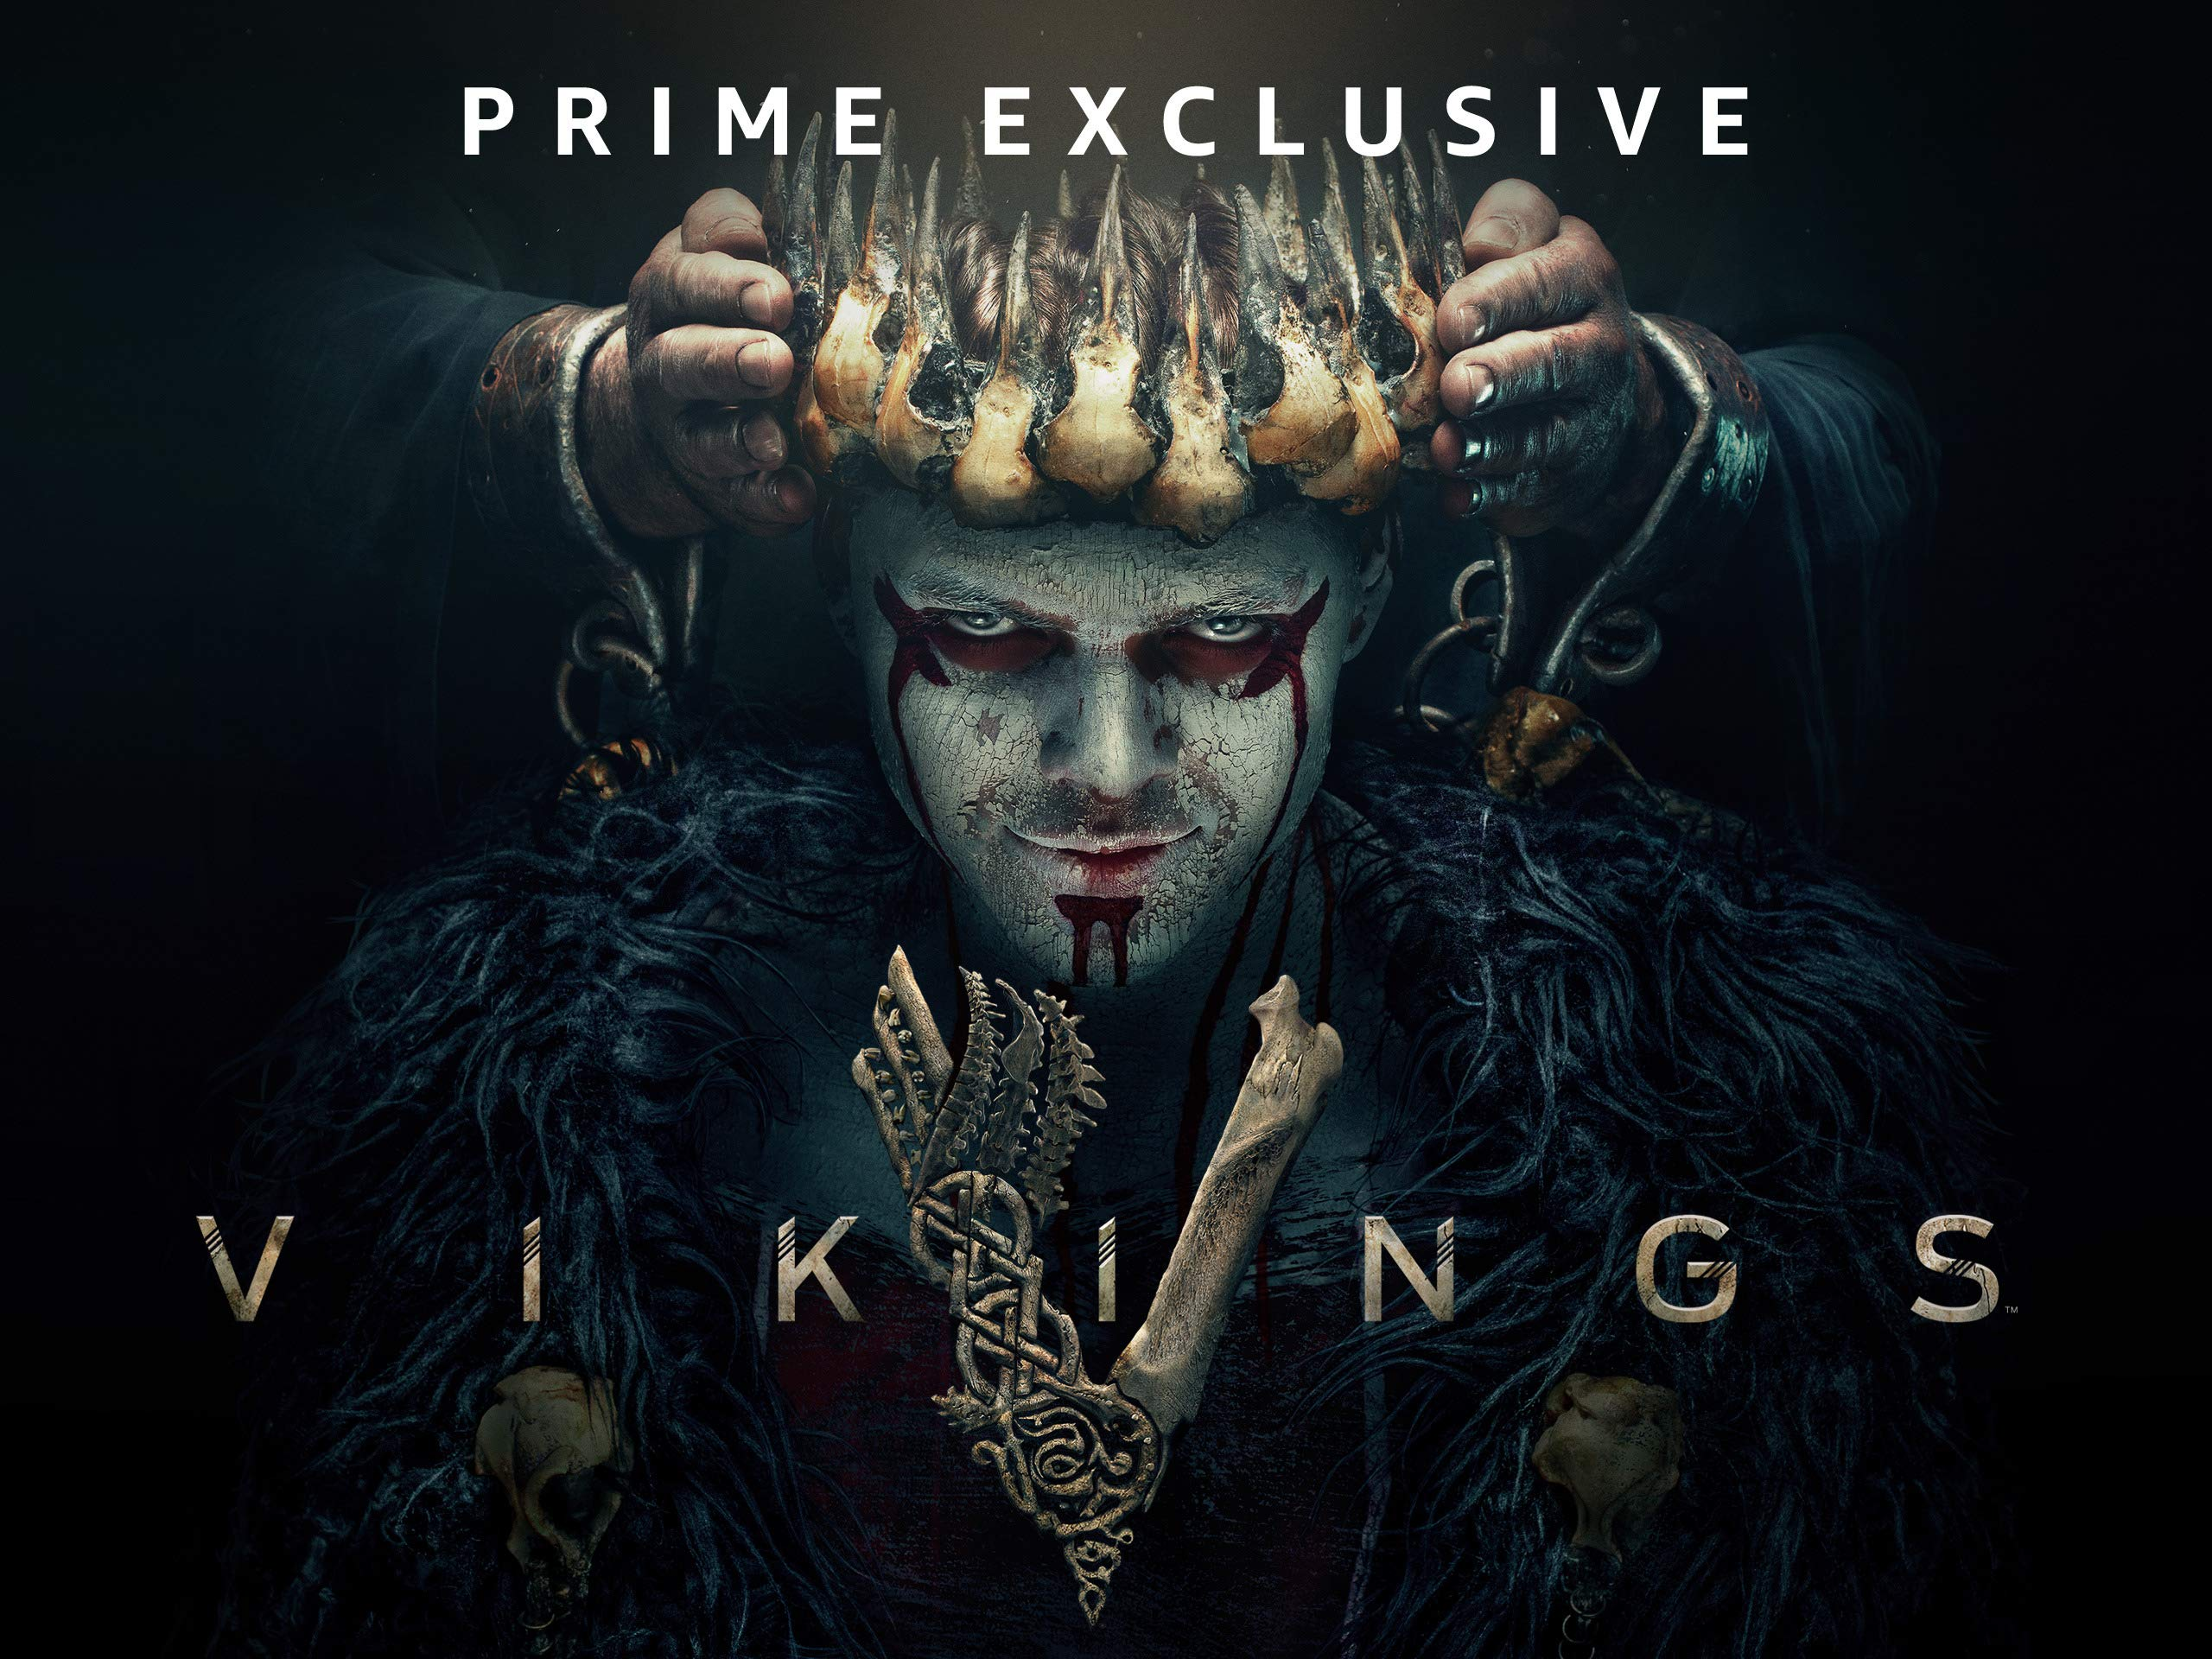 Amazon co uk: Watch Vikings Season 5 - Part 2 | Prime Video